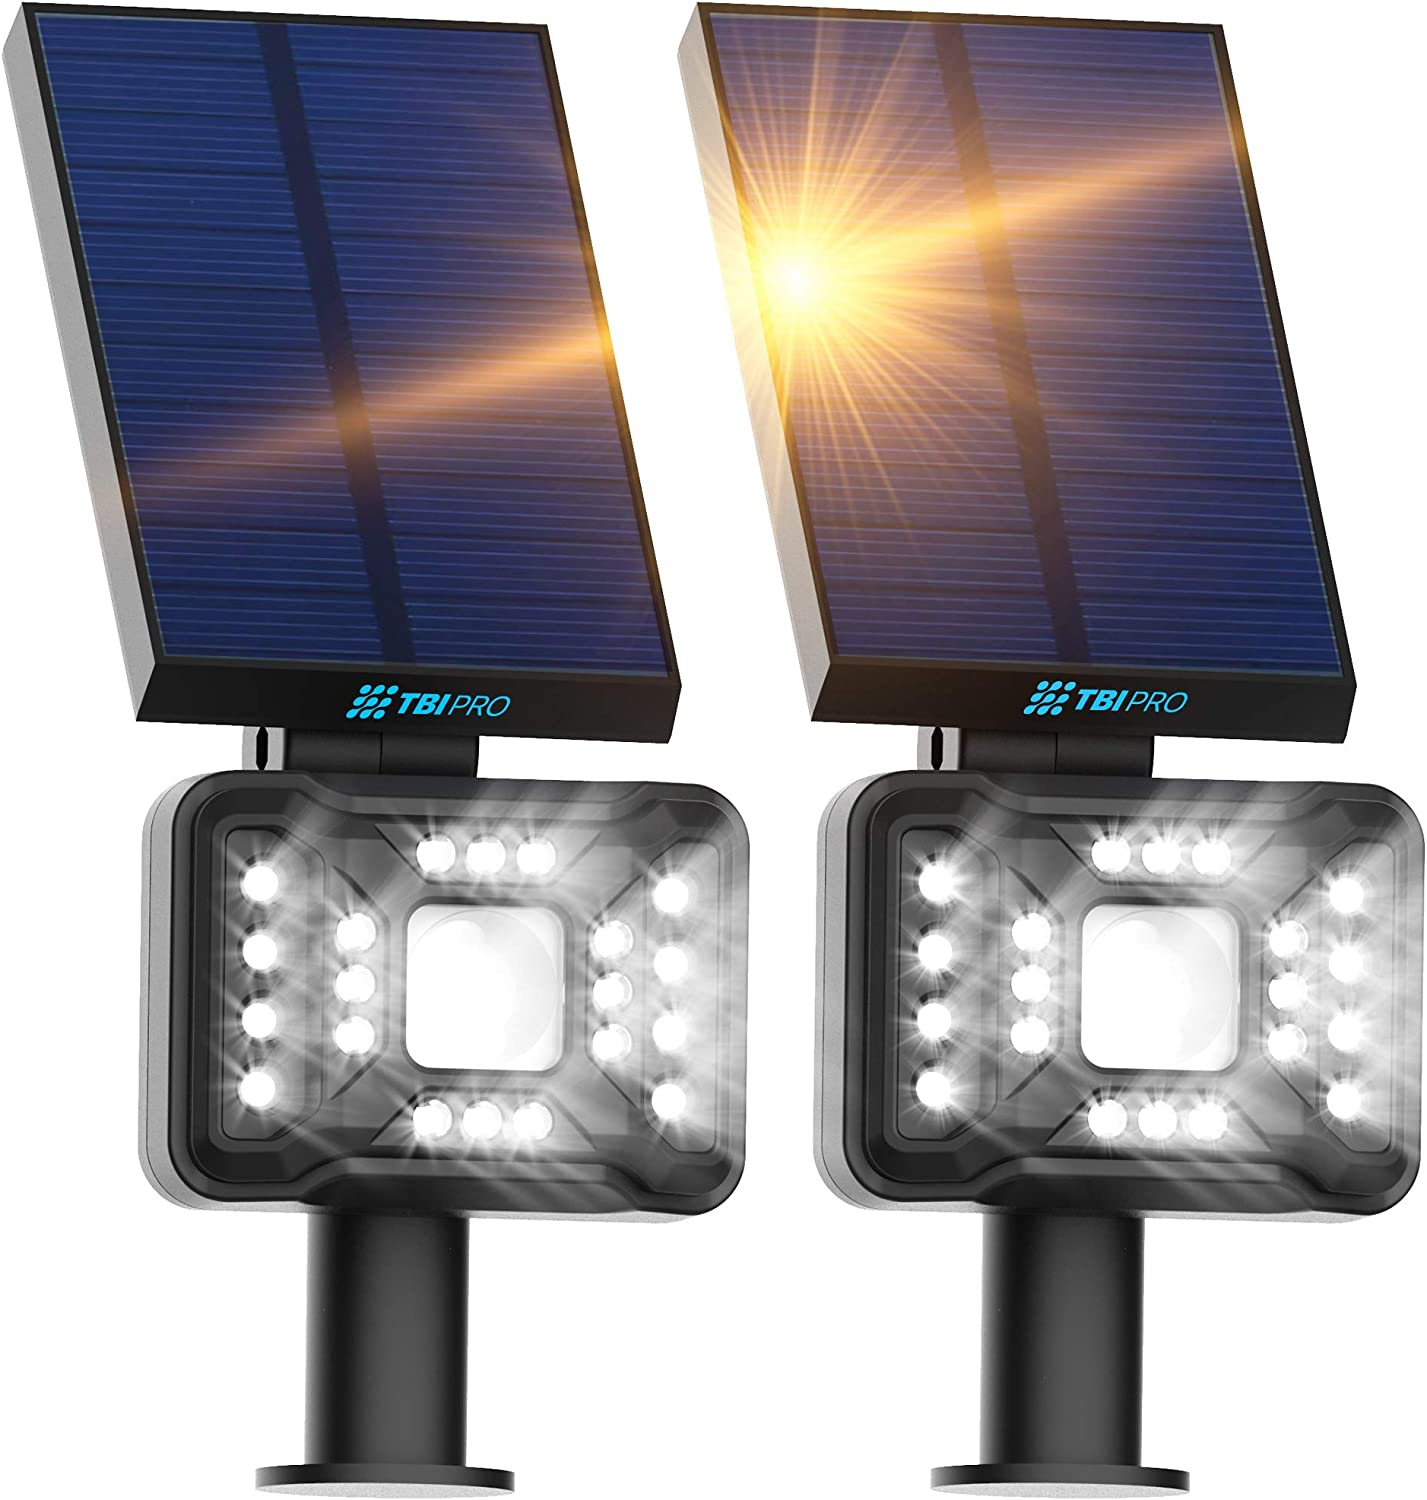 TBI Pro 21 LEDs Solar Landscape Spotlights, IP65 Waterproof Solar Powered Wall Lights 2-in-1 Wireless Outdoor Solar Landscaping Lights for Yard Garden Driveway Porch Walkway Patio 2 Pack Cold White